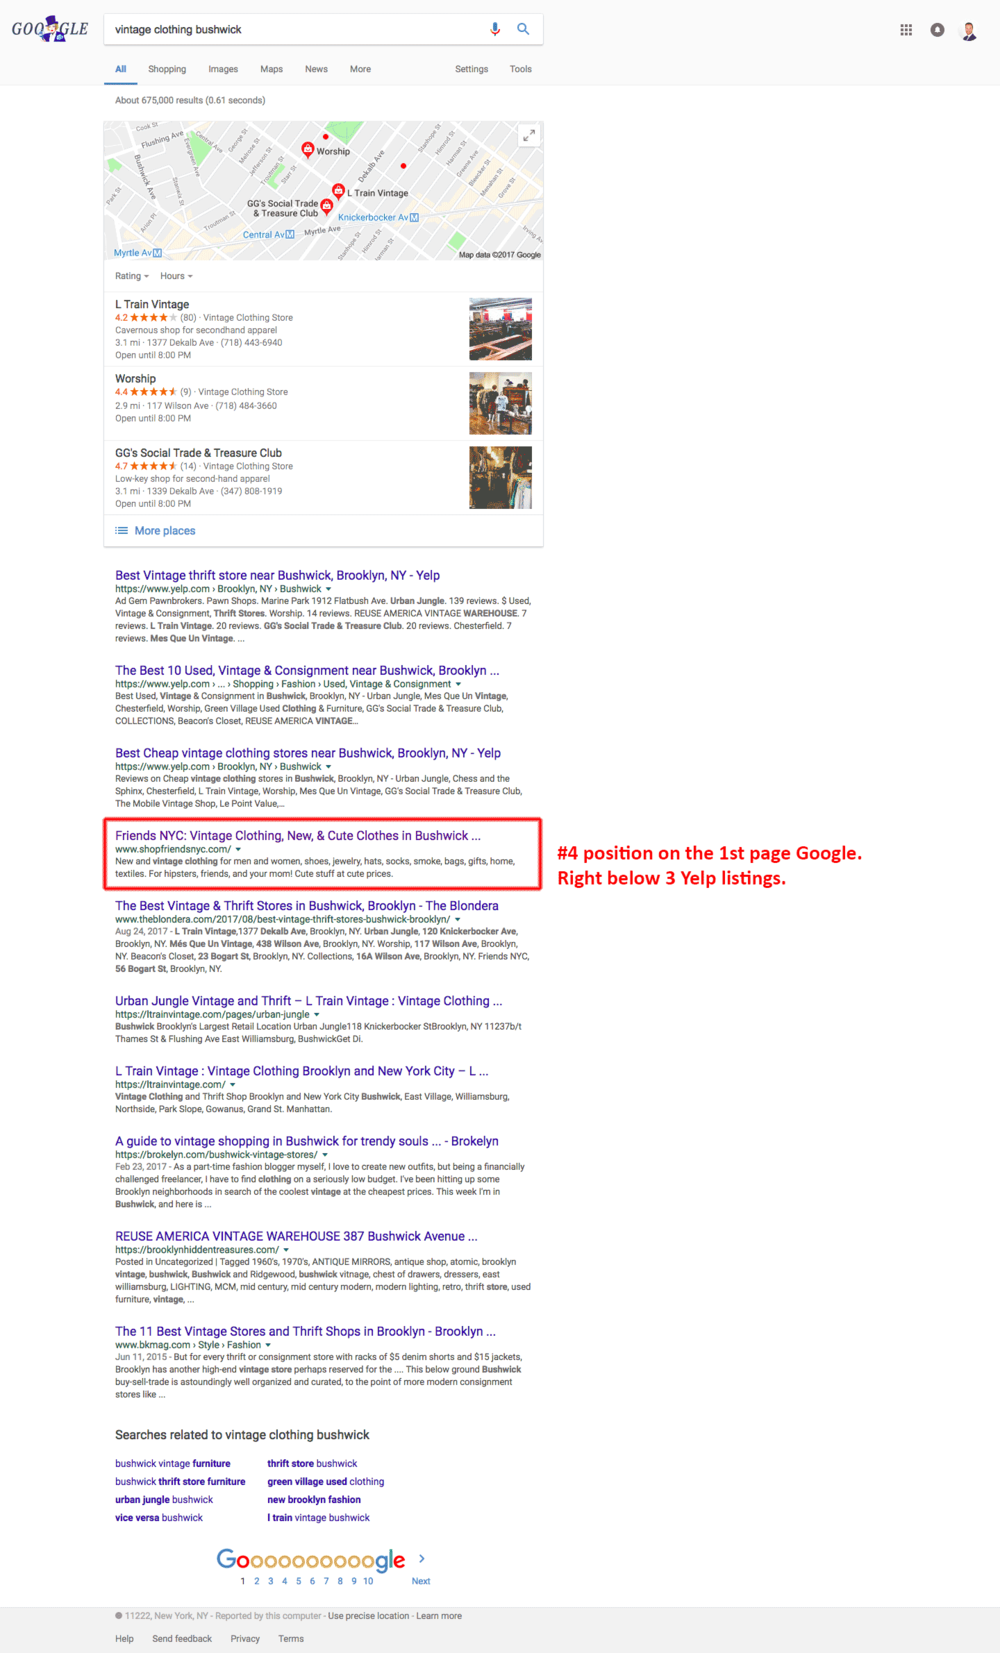 Friends ranks in the #4 position on the 1st page of Google right below 3 Yelp listings.